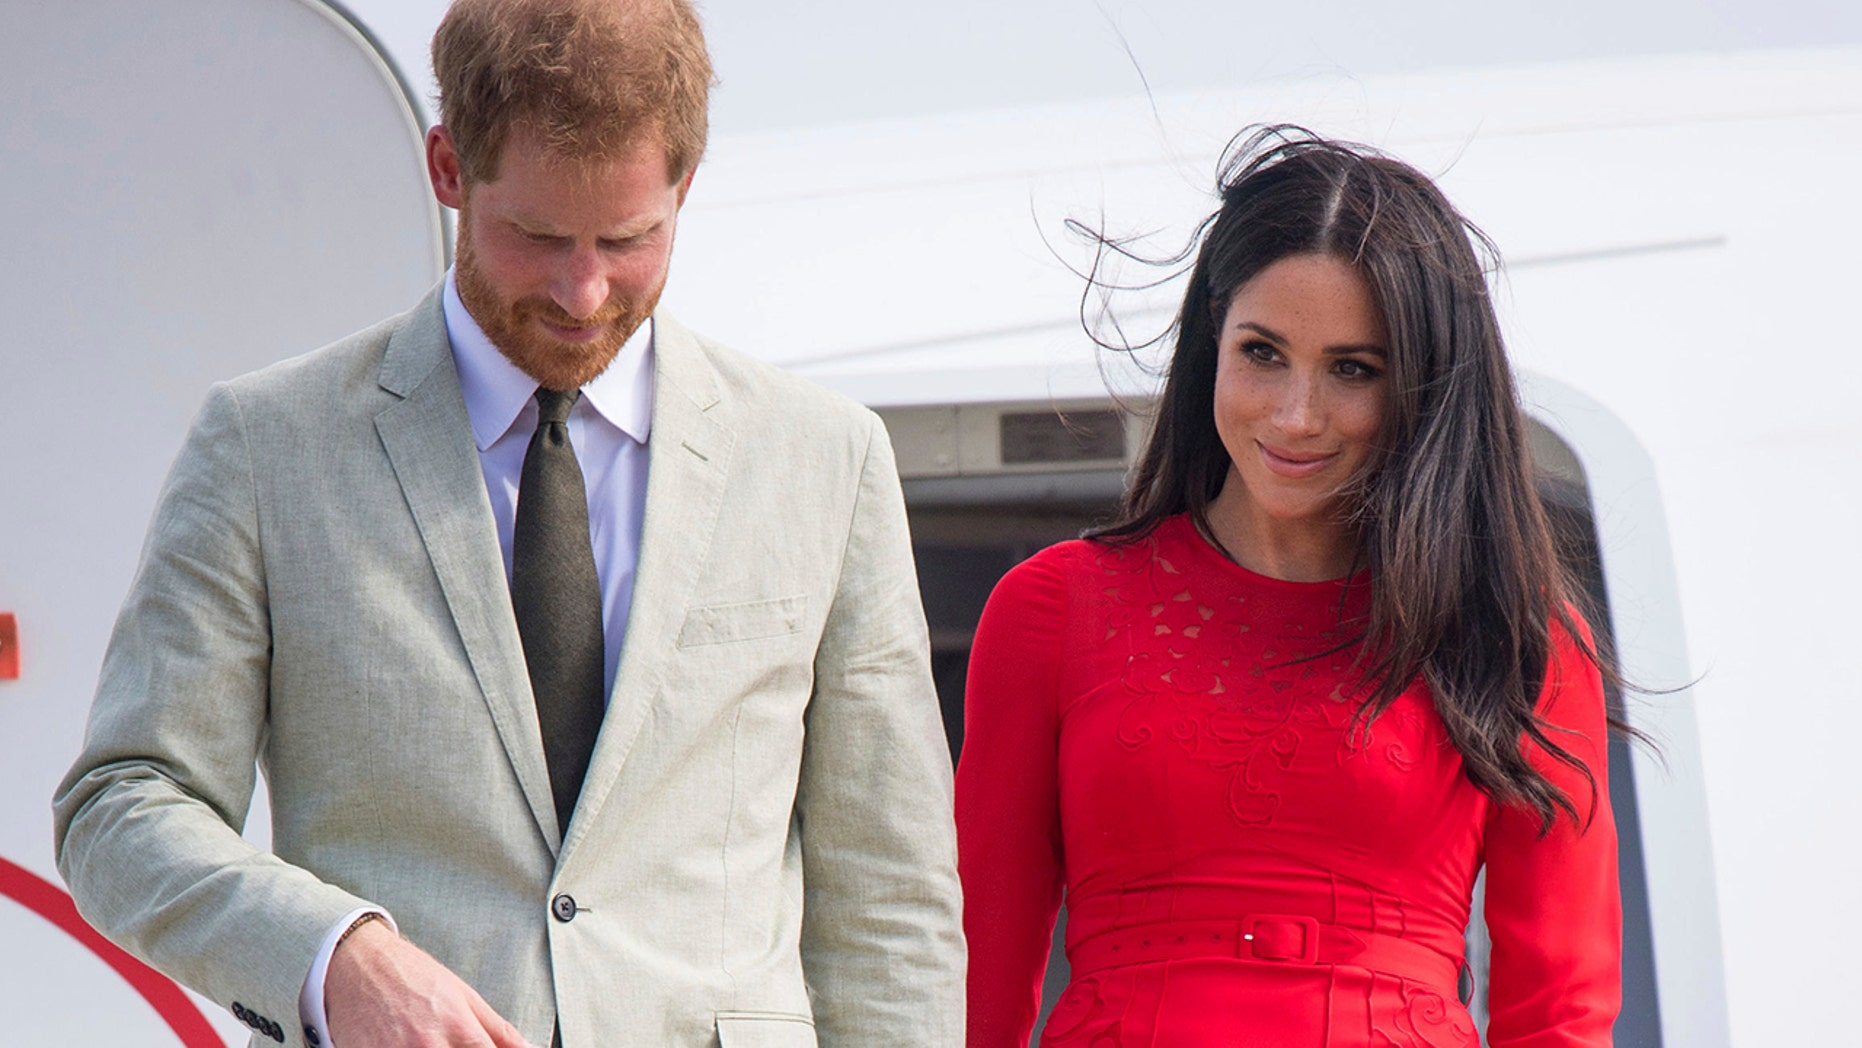 Meghan Markle reconnects with her feminism roots - Nairobi